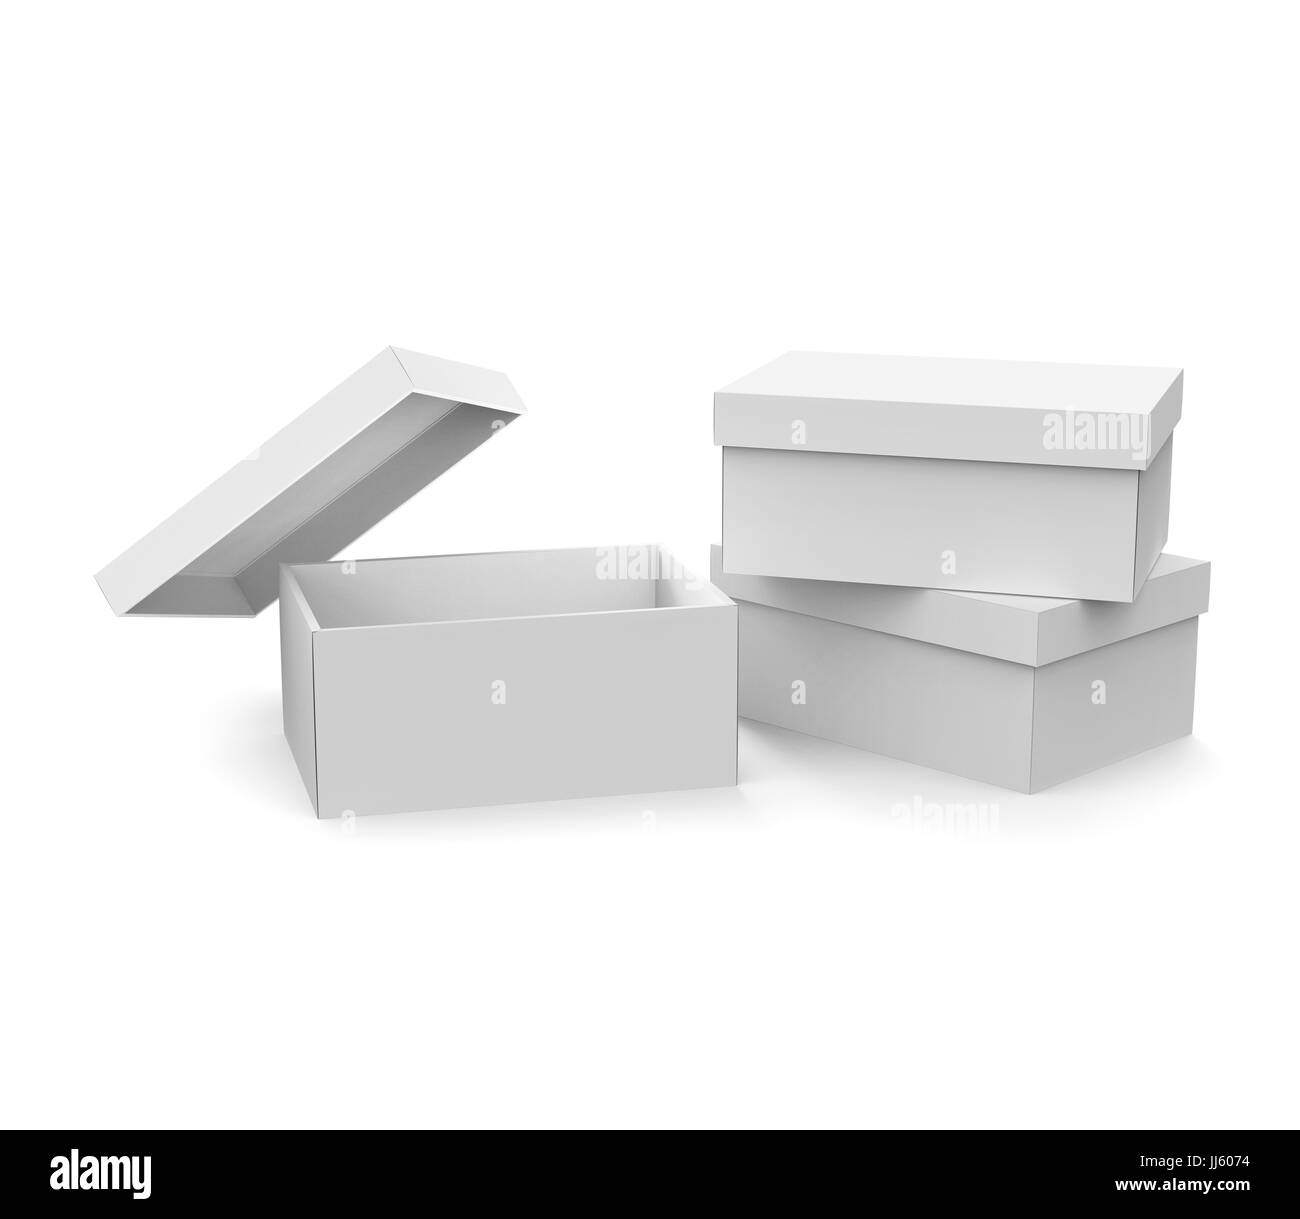 Blank Paper Box Template Three Boxes Mockup With Lid In 3d Rendering One Open And Lean On It